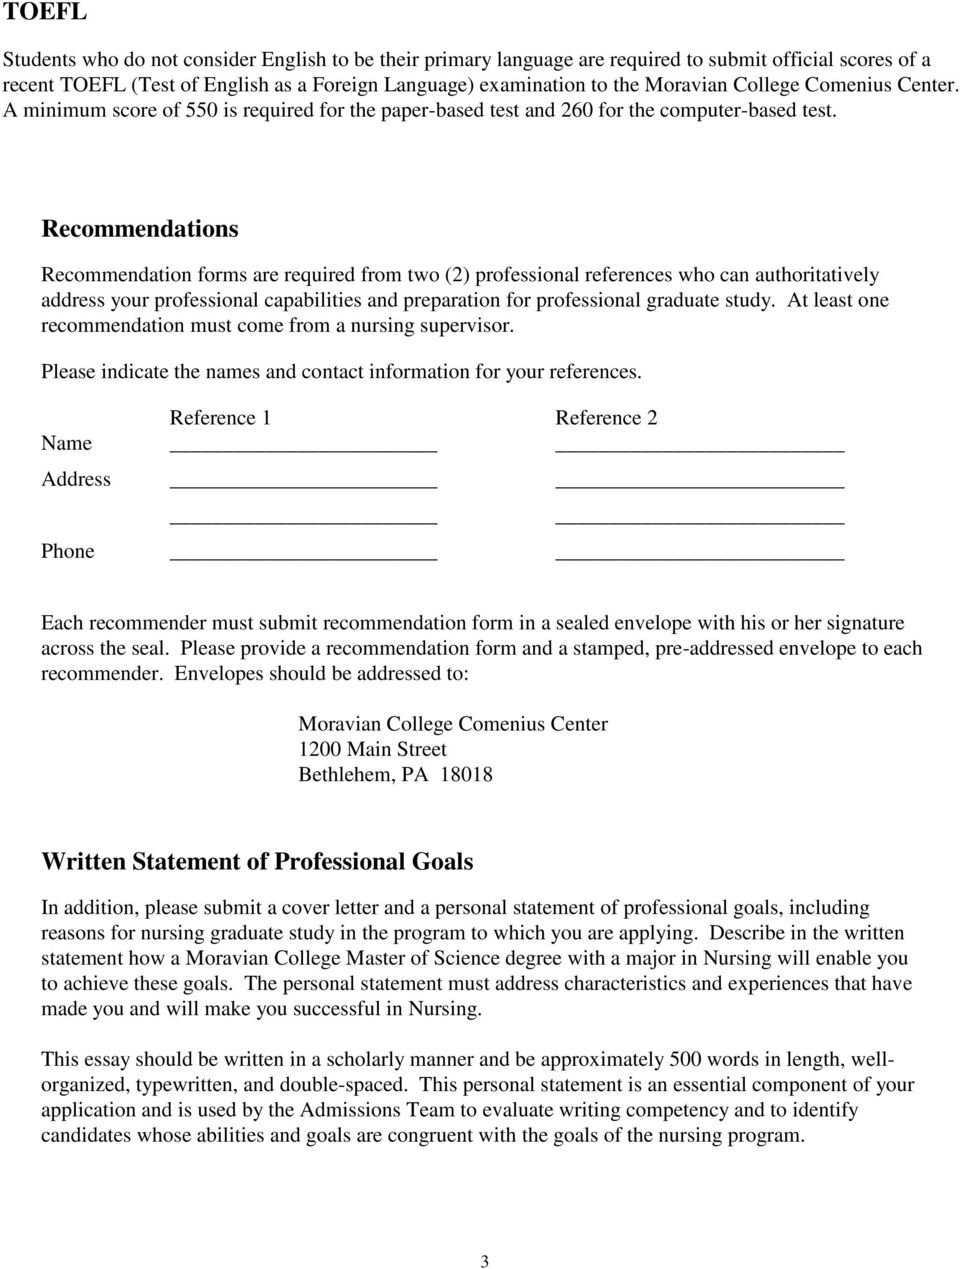 Recommendations Recommendation forms are required from two (2) professional references who can authoritatively address your professional capabilities and preparation for professional graduate study.